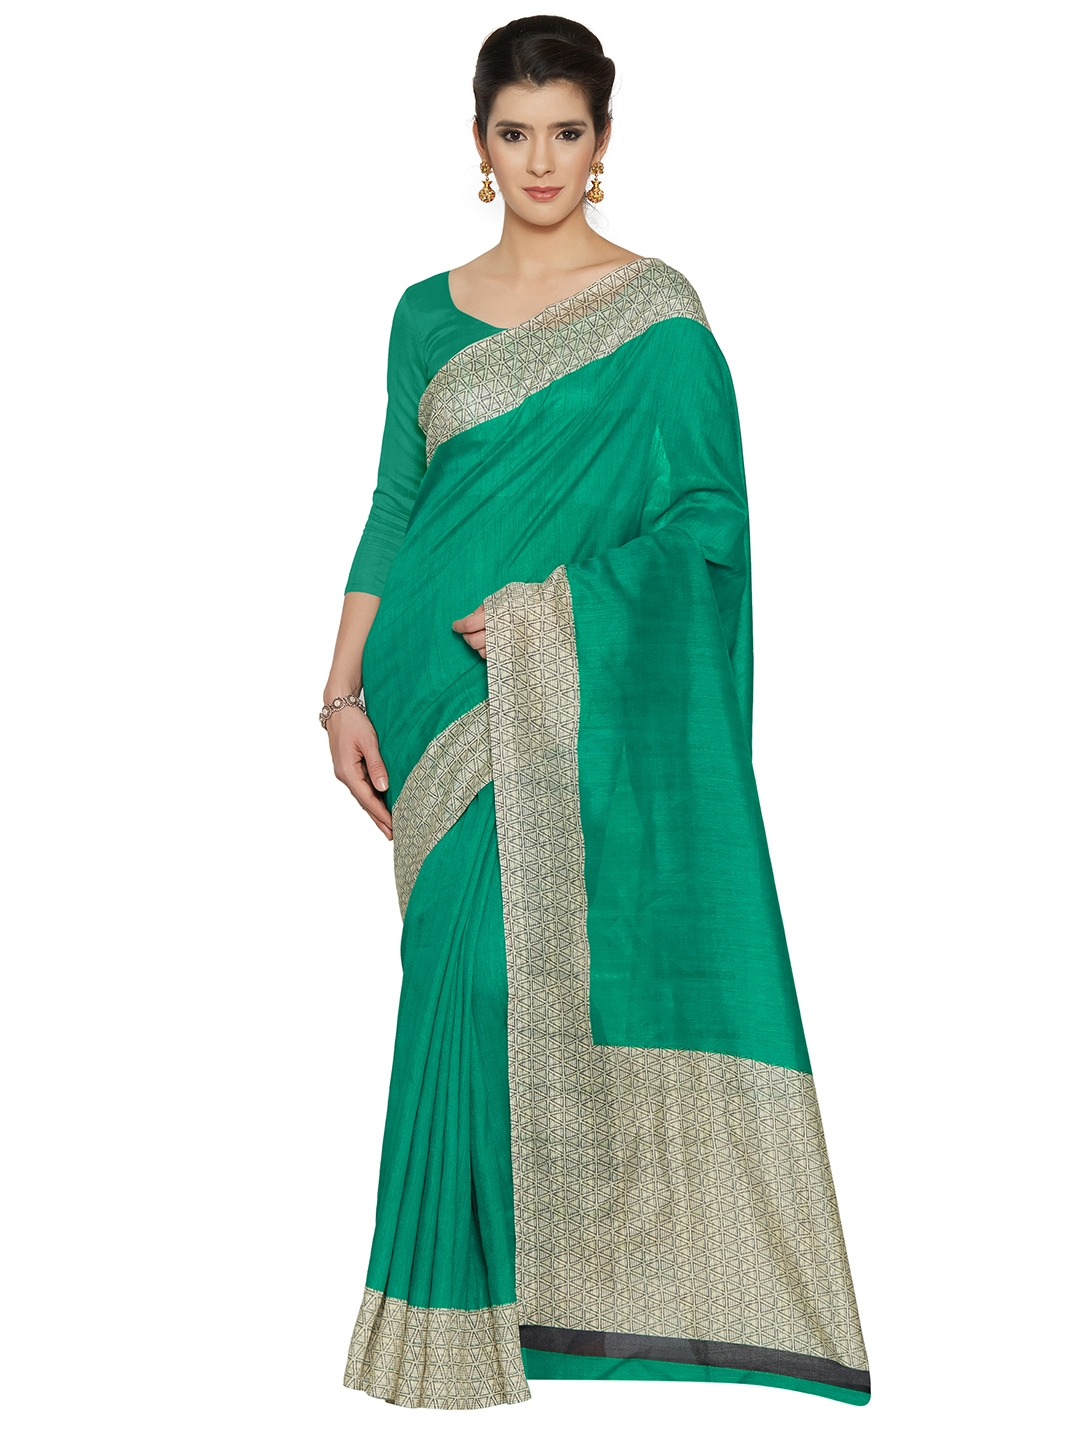 b3338eaadda7d Buy Mirchi Fashion Green Art Silk Solid Bhagalpuri Saree - Sarees ...